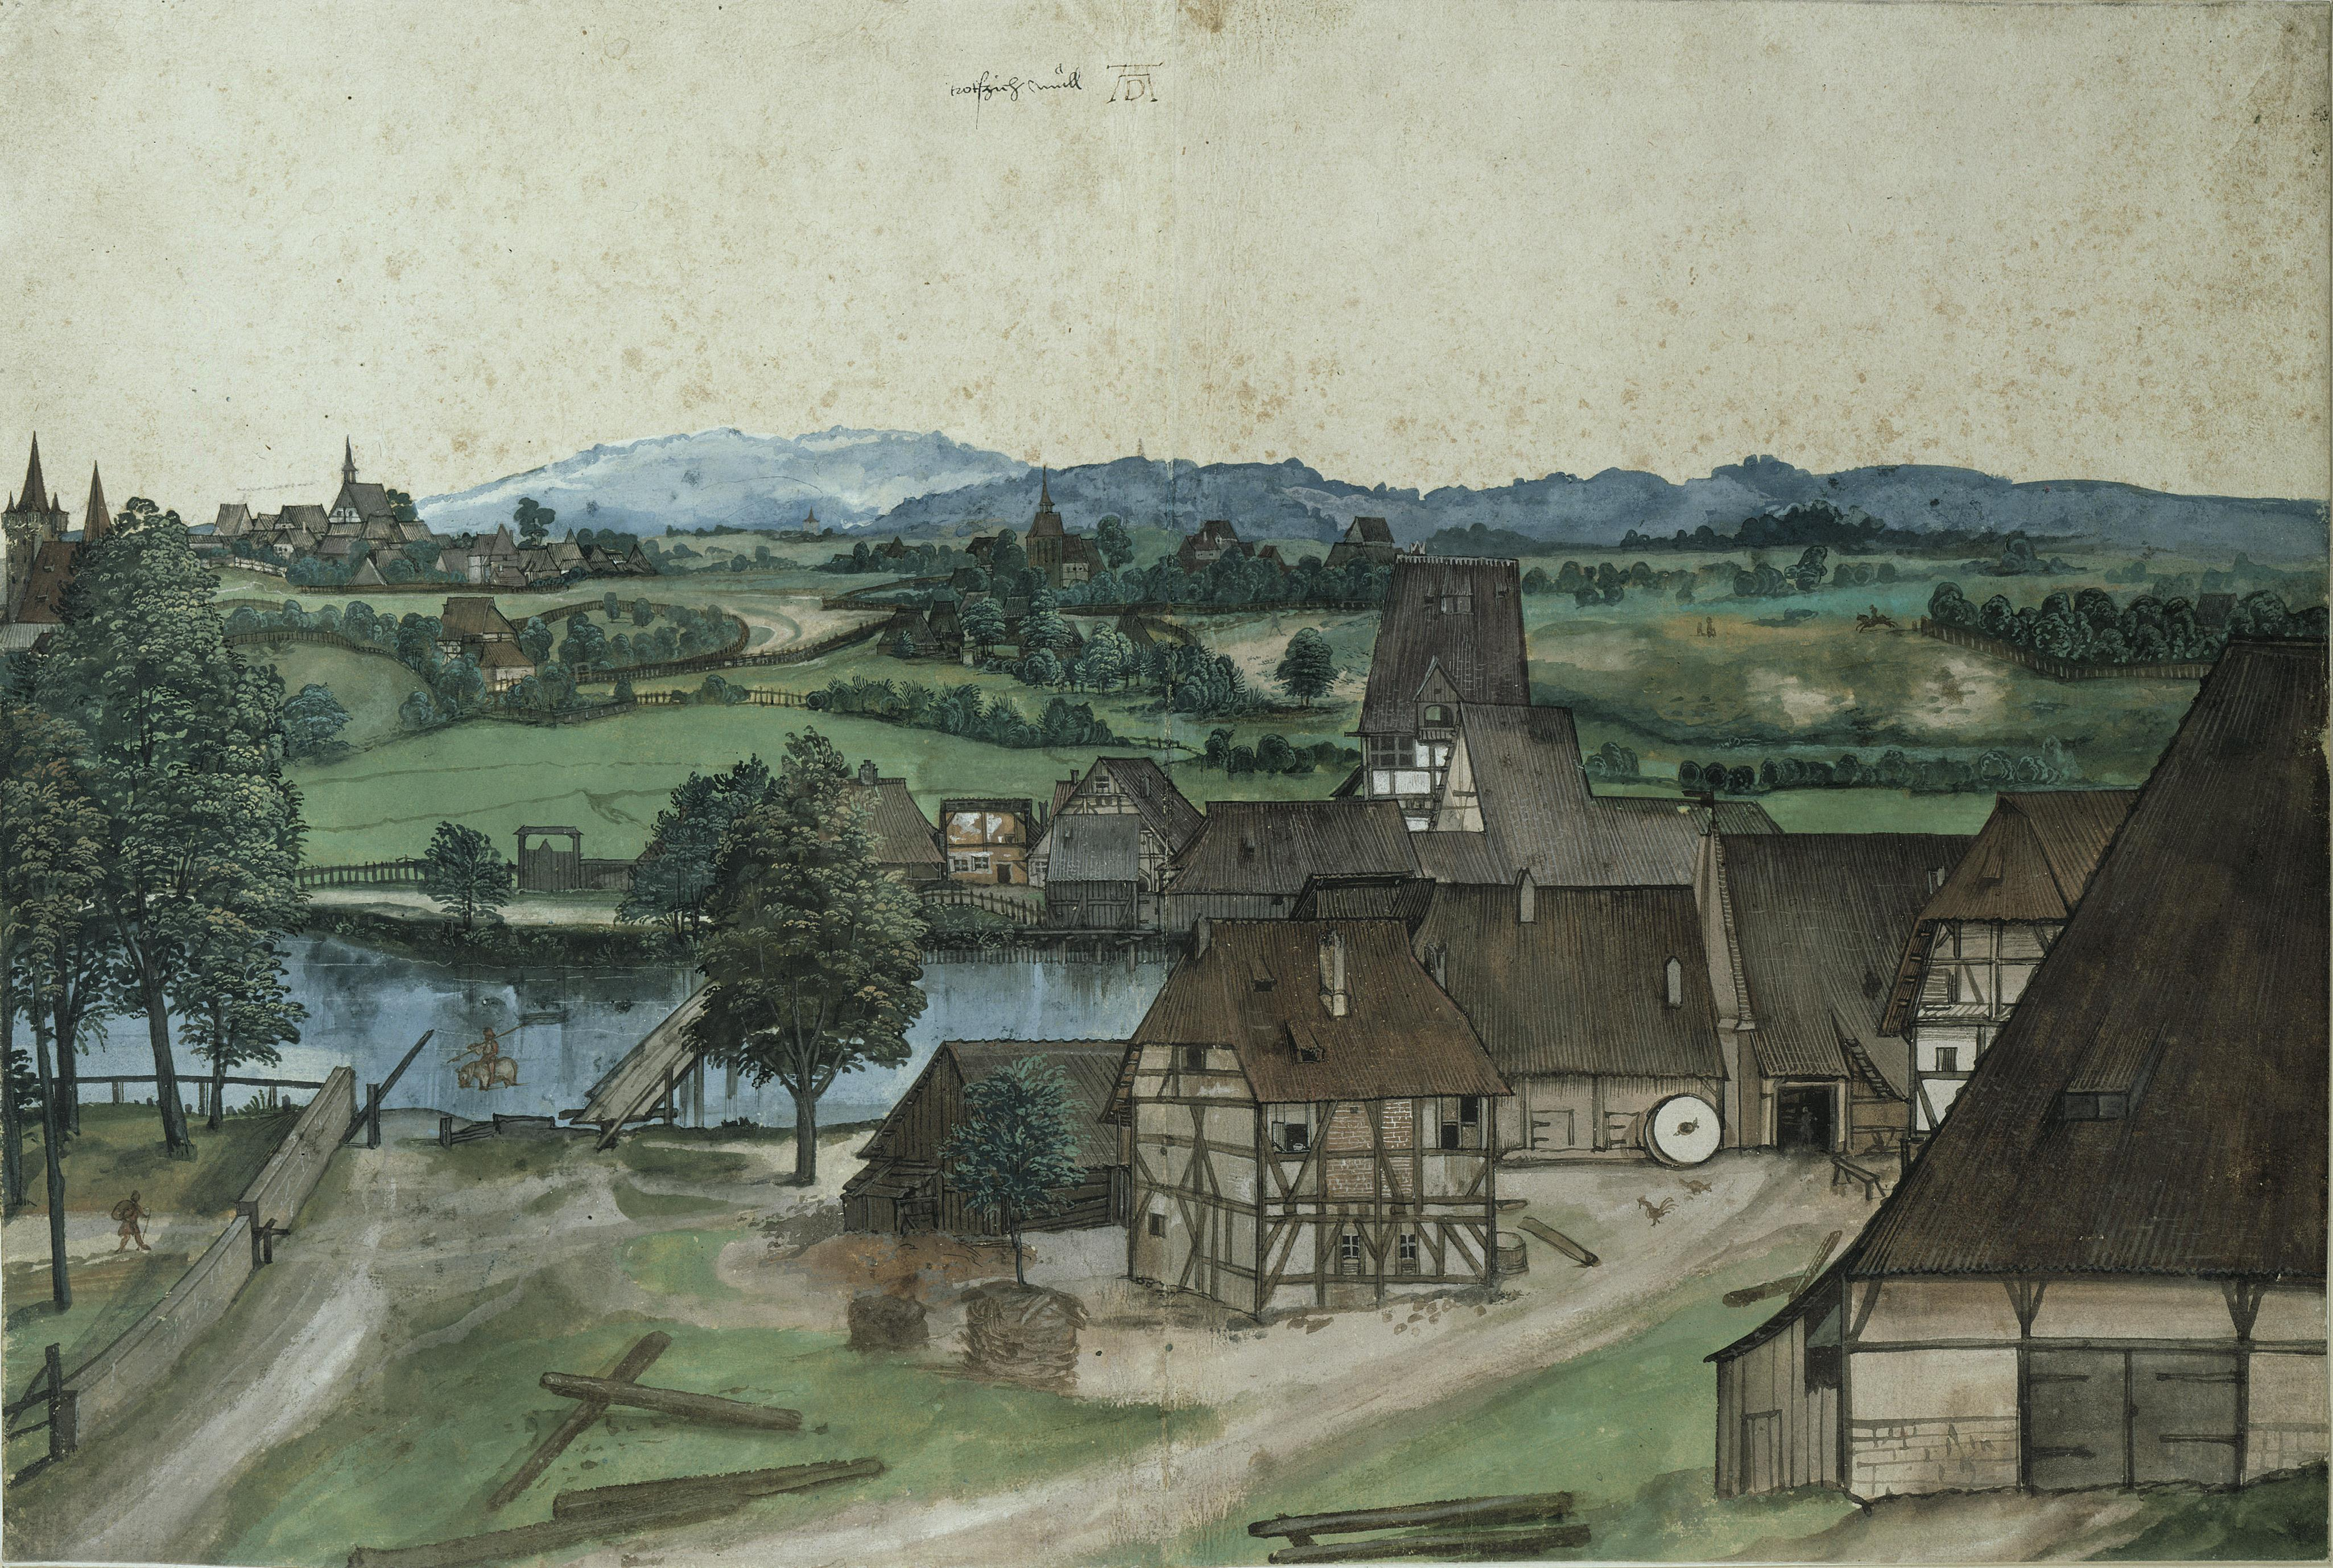 Milan To Rome >> File:Duerer Drahtziehmuehle.jpg - Wikimedia Commons